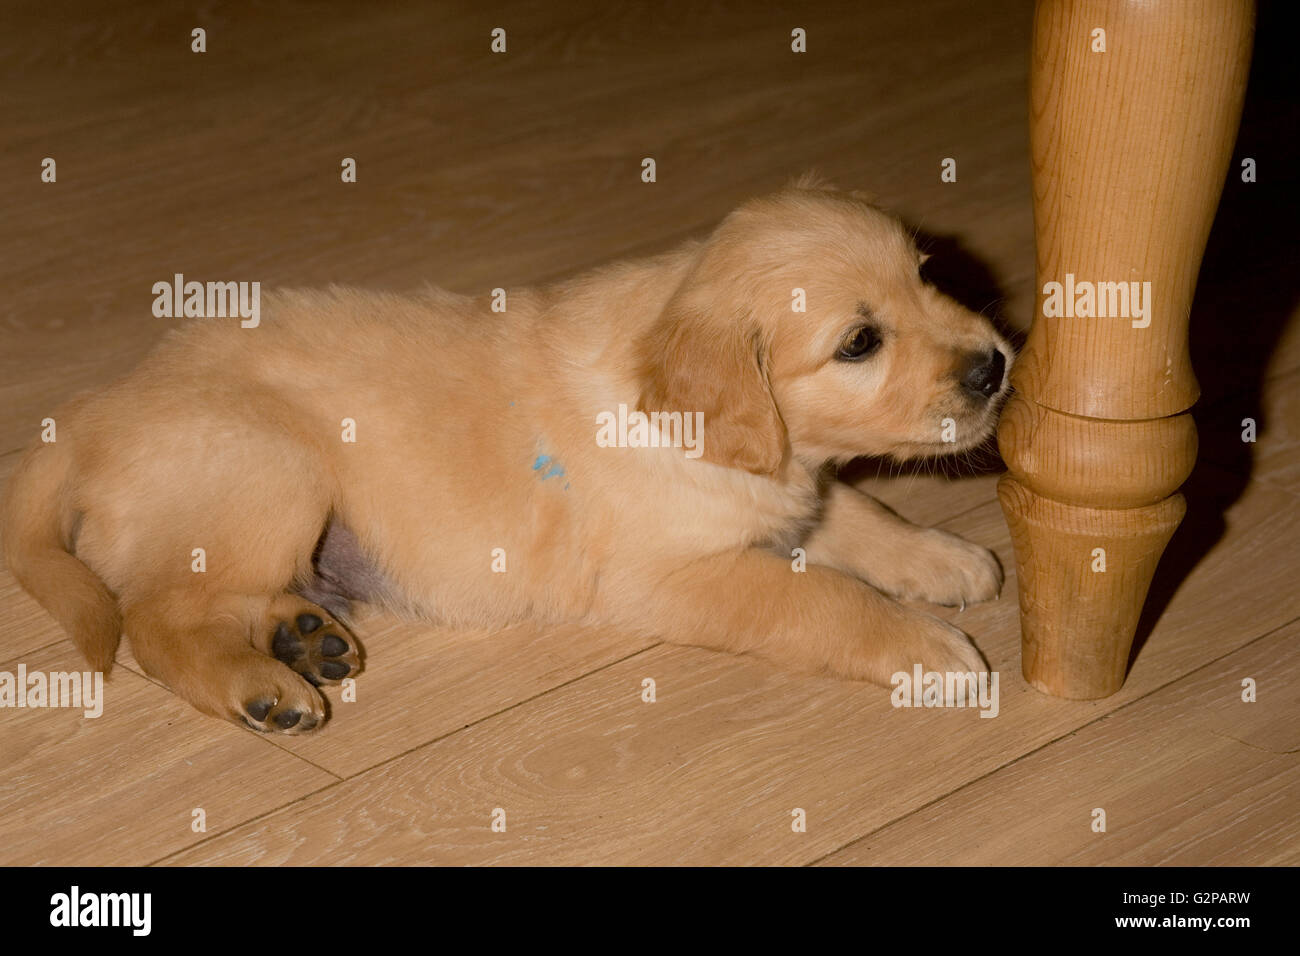 golden retriever puppy by table leg on laminate floor of office study - Stock Image